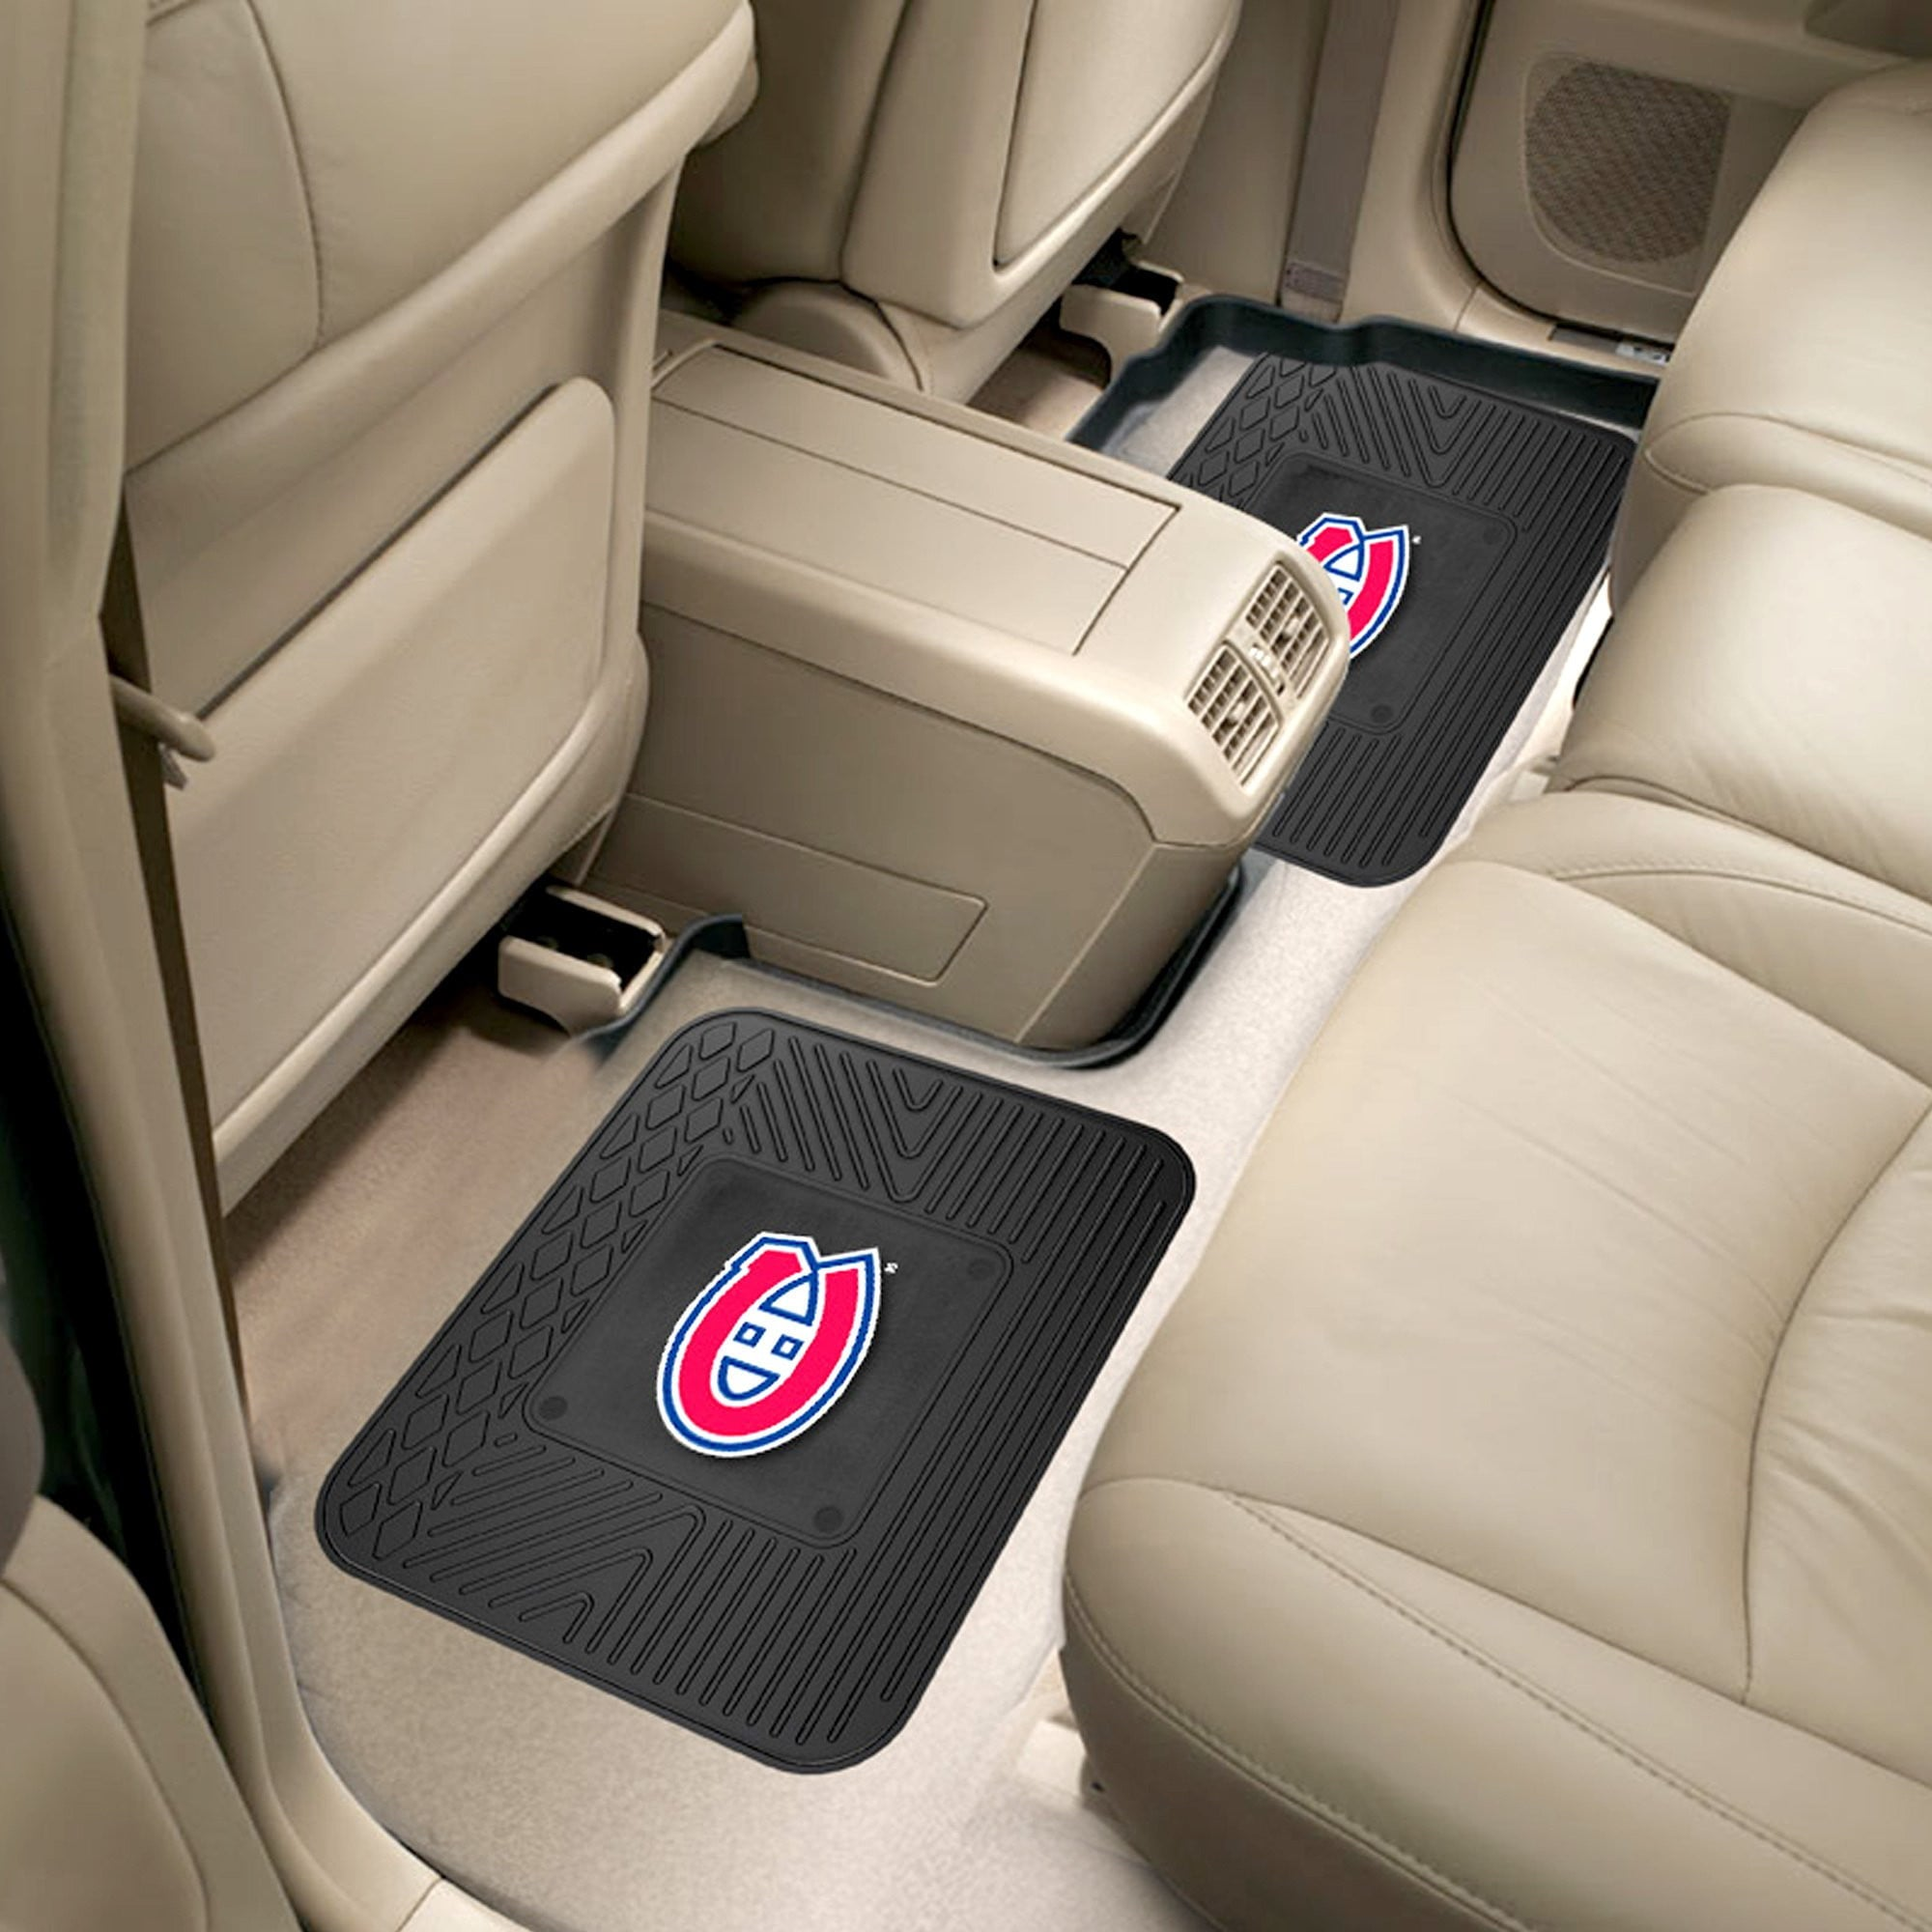 NHL - Montreal Canadiens 2 Utility Car Mats